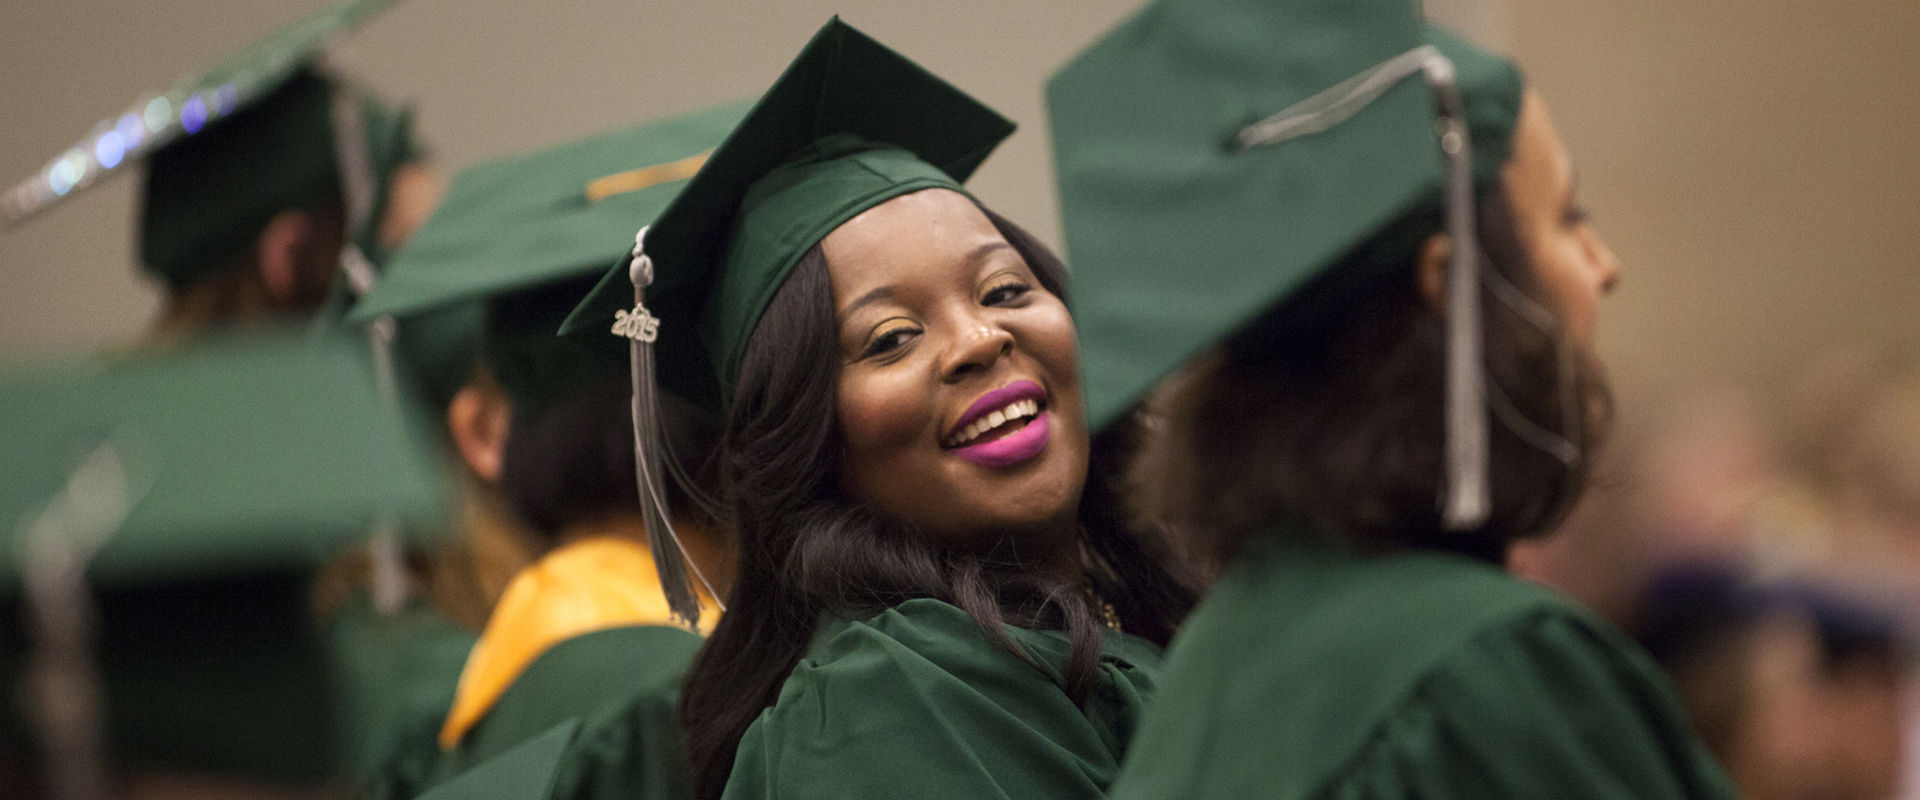 2019/2020 Scholarships in Europe for African/International ...